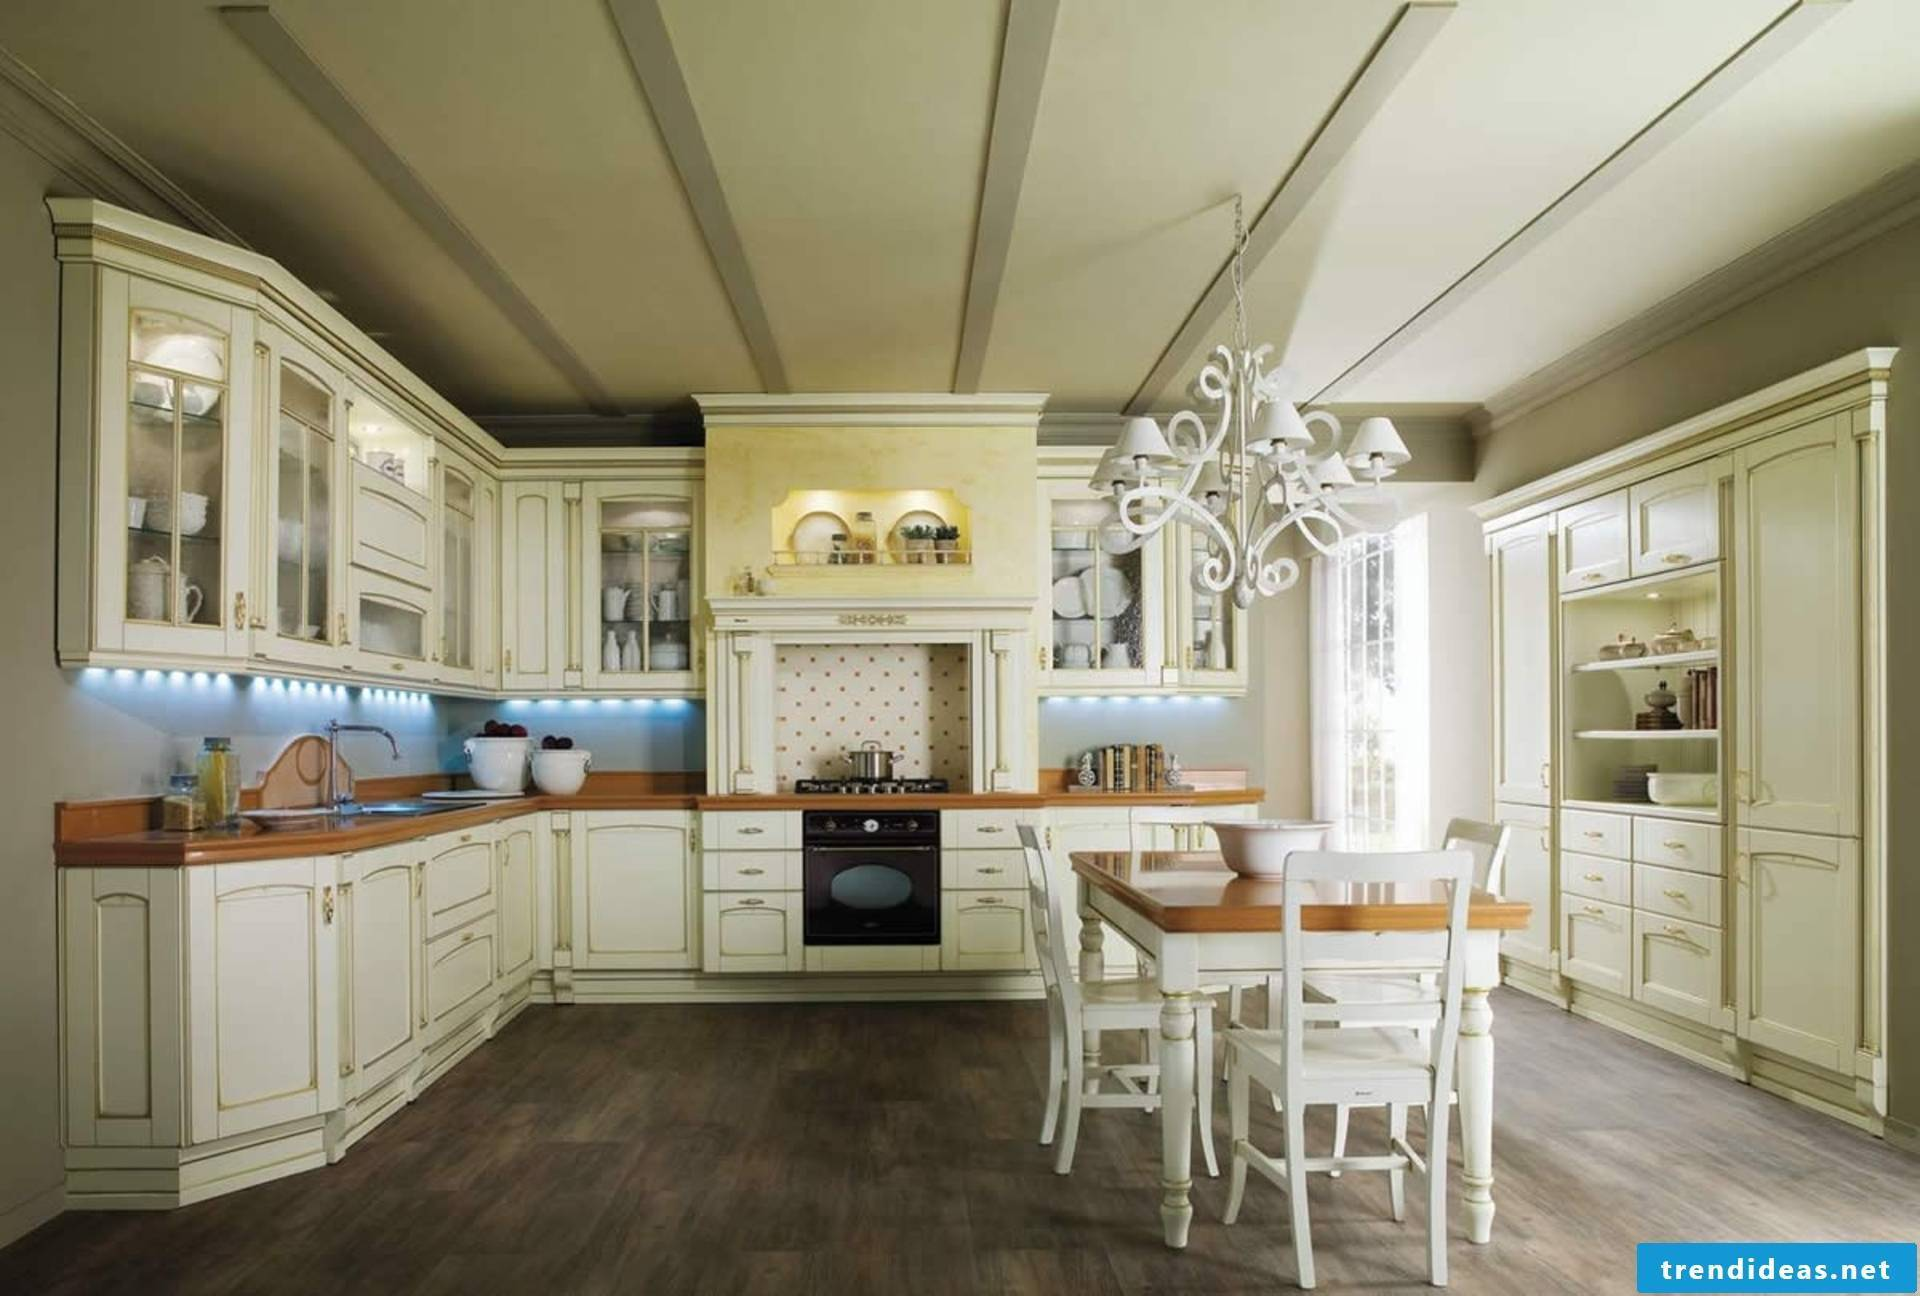 Pure Romatink - Country-style kitchen